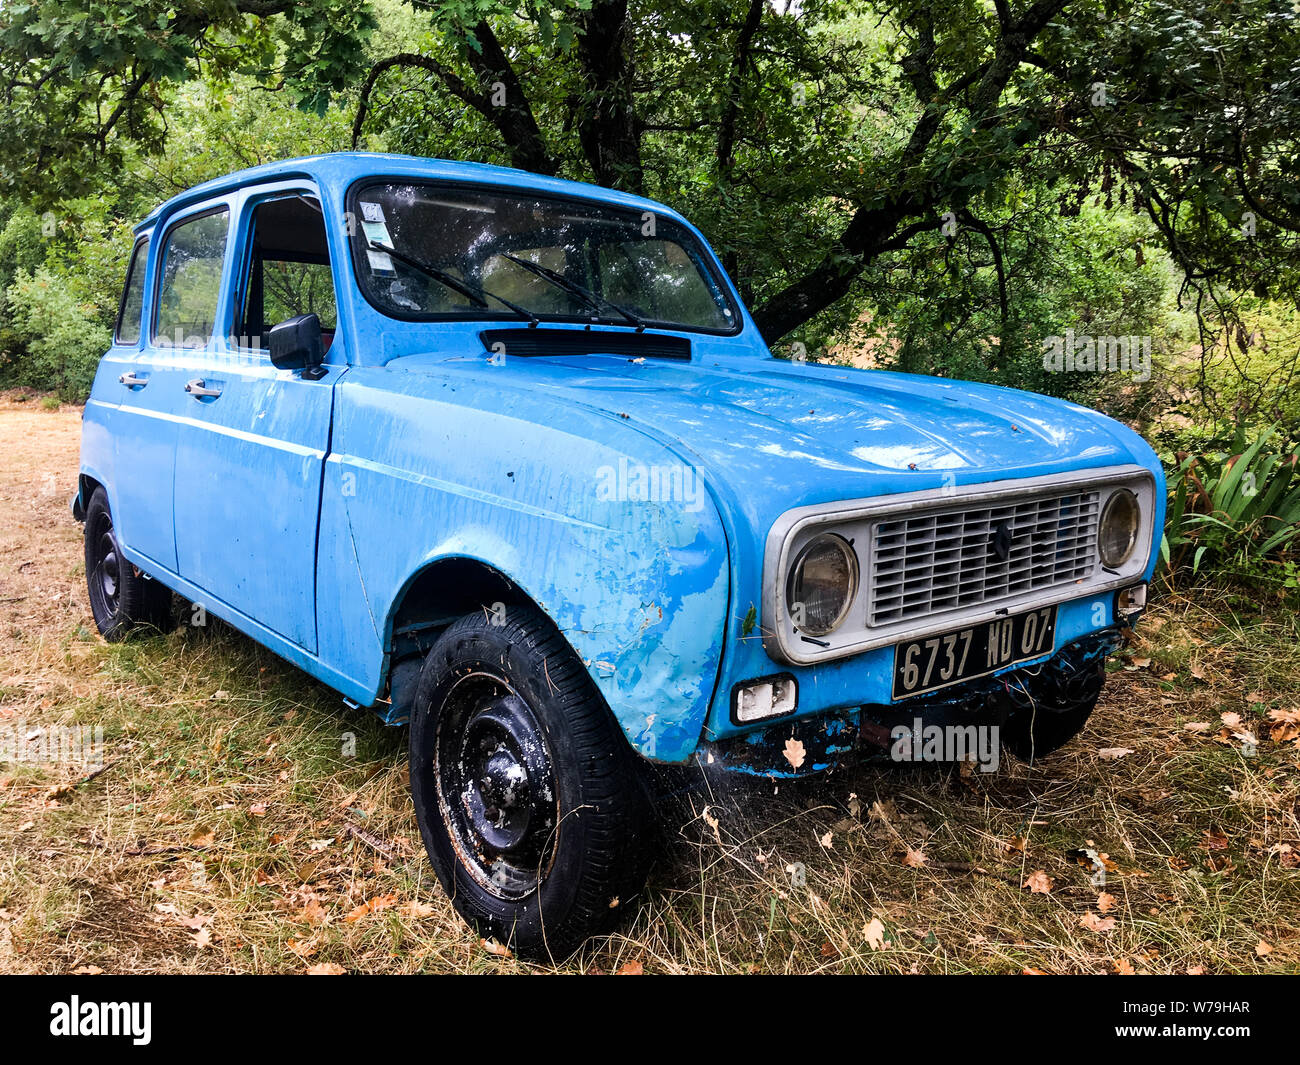 Vintage Renault 4l High Resolution Stock Photography And Images Alamy